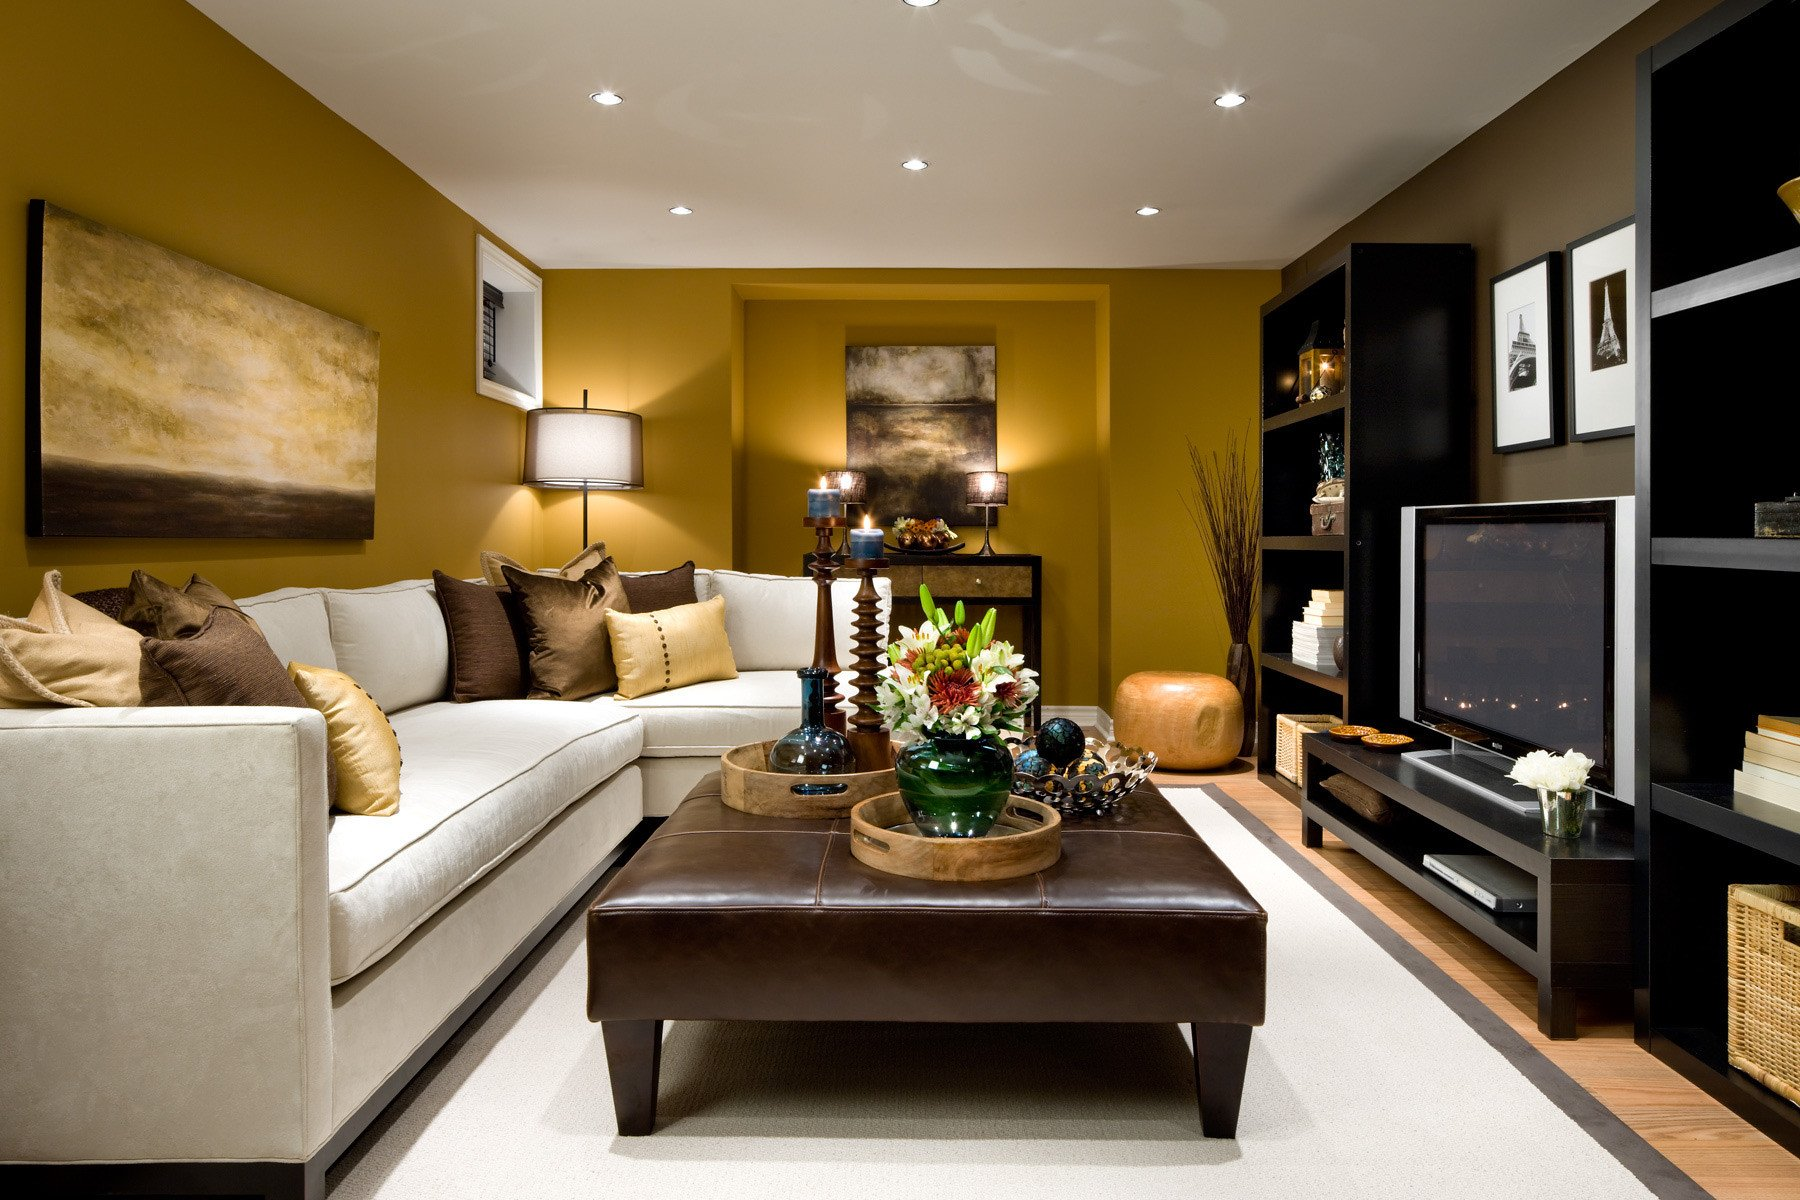 Living Room Ideasfor Small Spaces Beautiful 50 Best Small Living Room Design Ideas for 2019